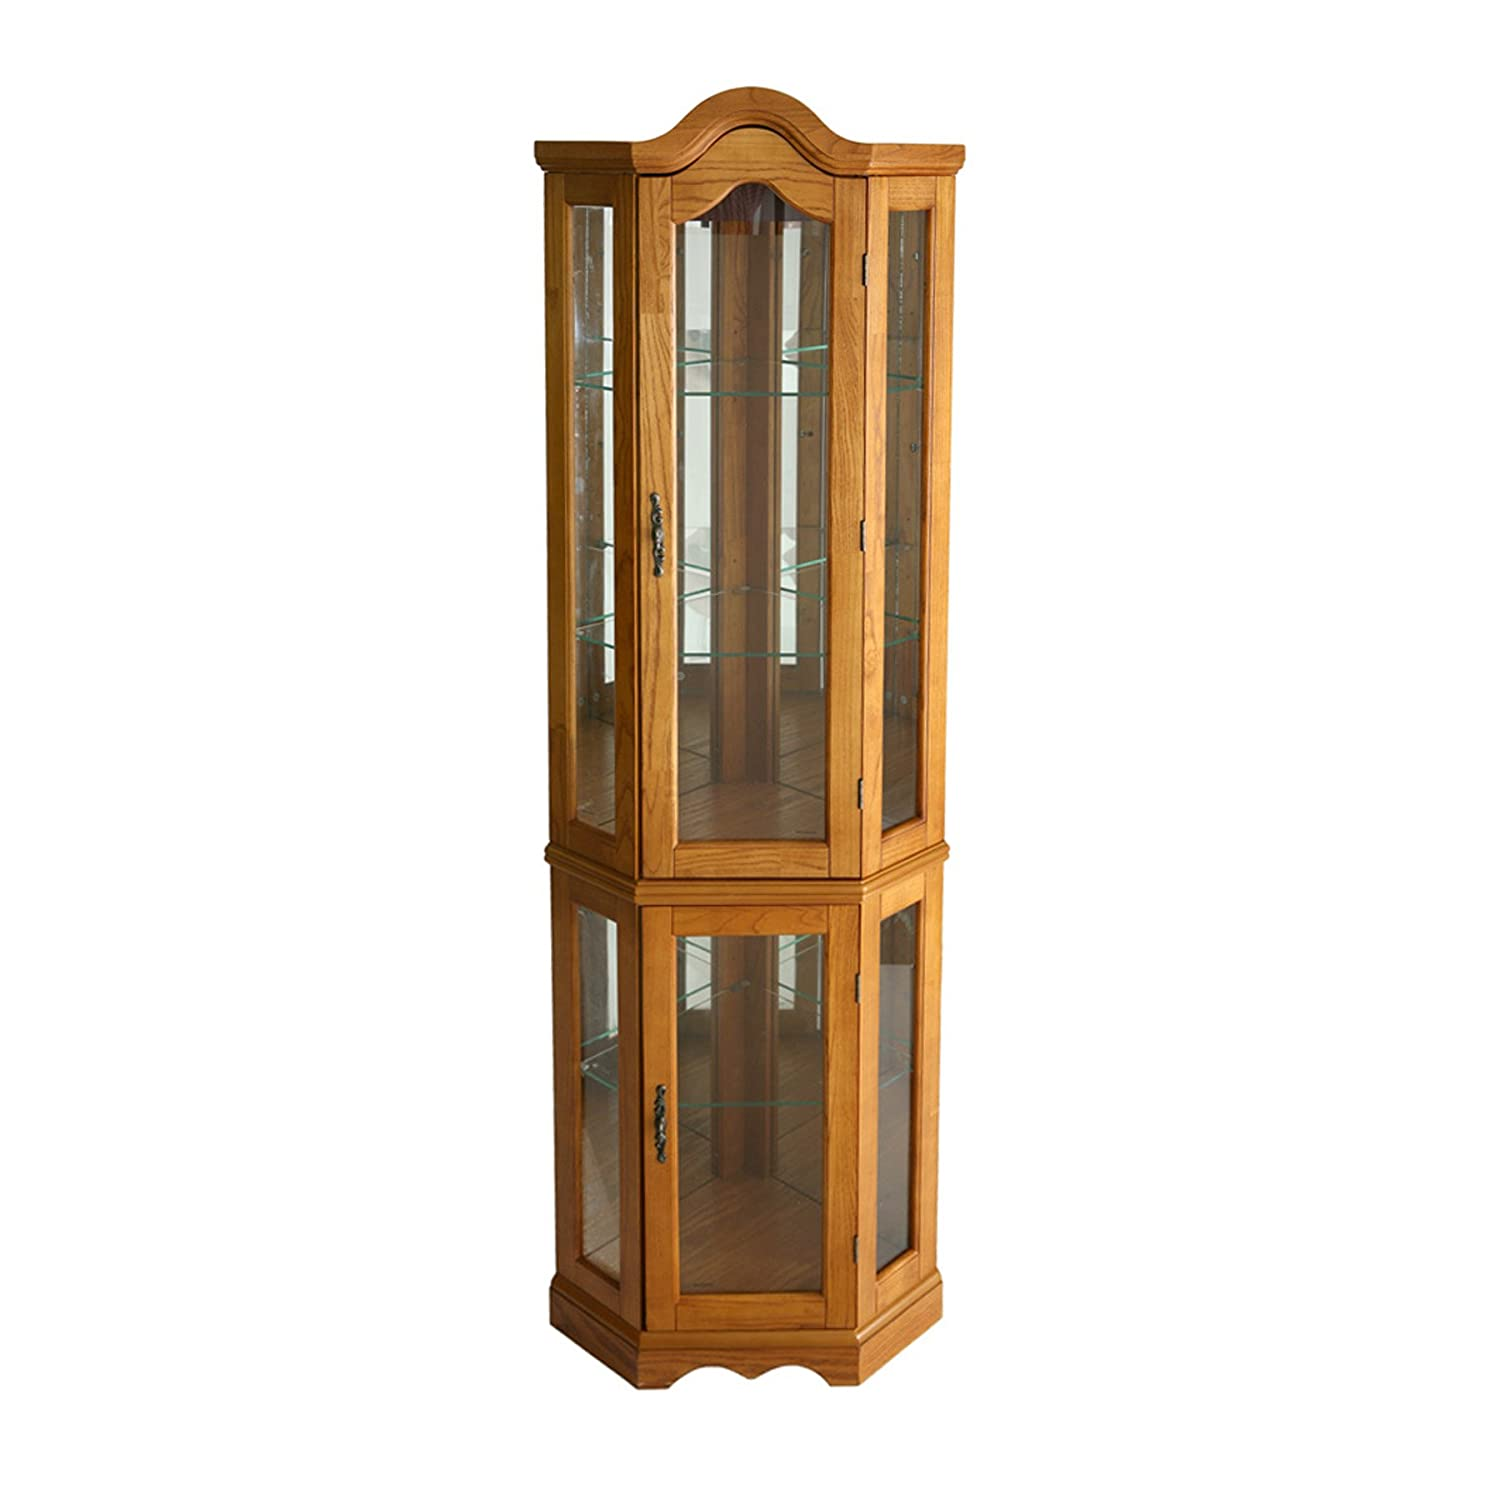 lighted corner curio cabinet golden oak ebay lighted corner curio cabinet cherry lighted corner curio cabinet - mahogany